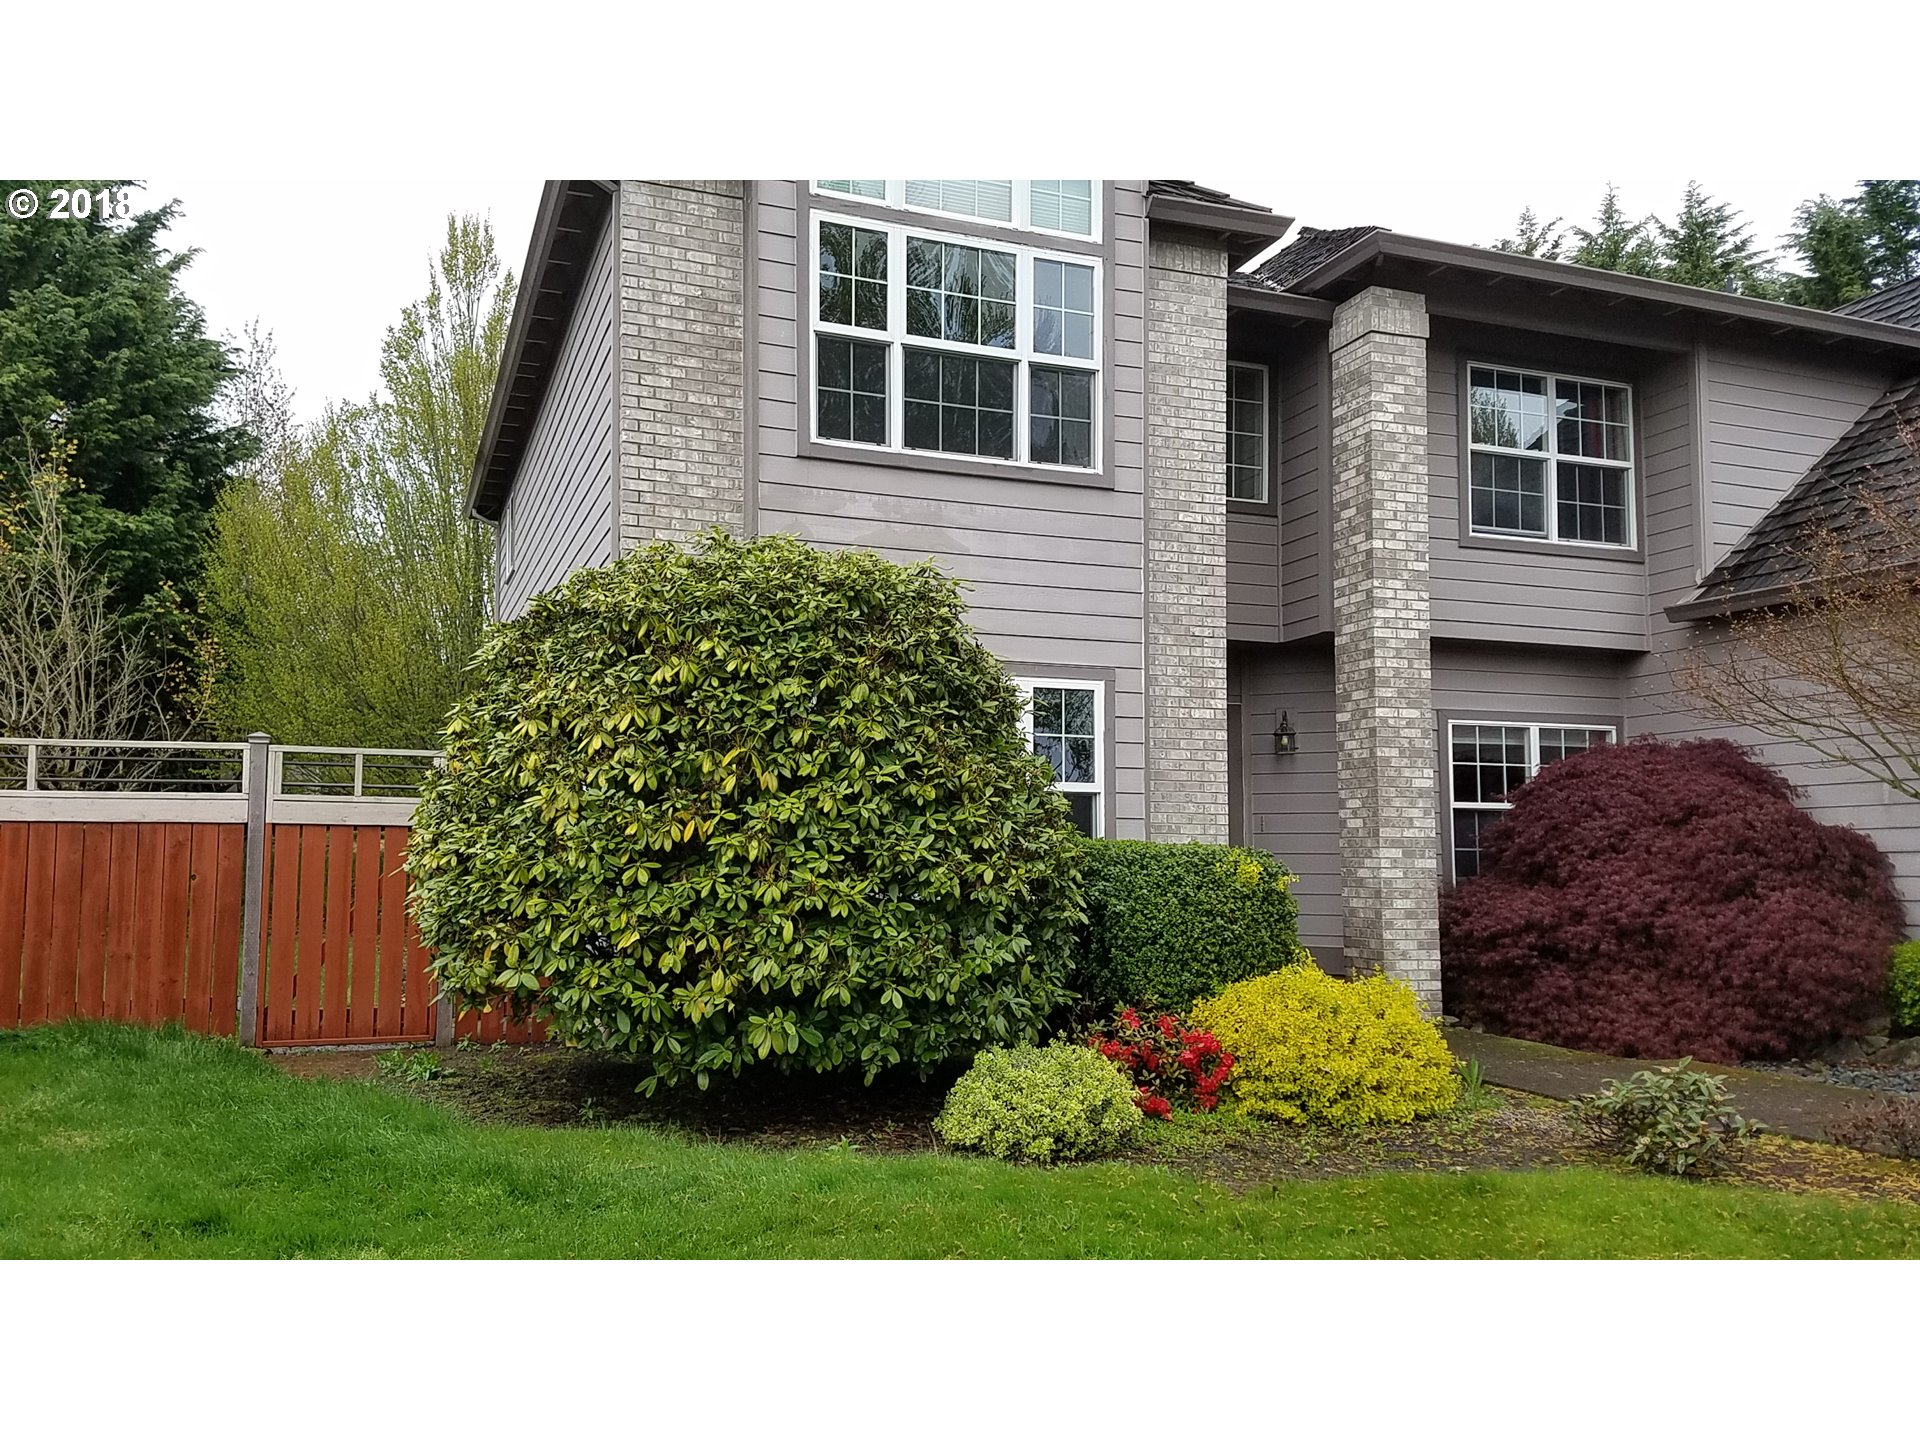 3254 sq. ft 4 bedrooms 3 bathrooms  House ,Portland, OR